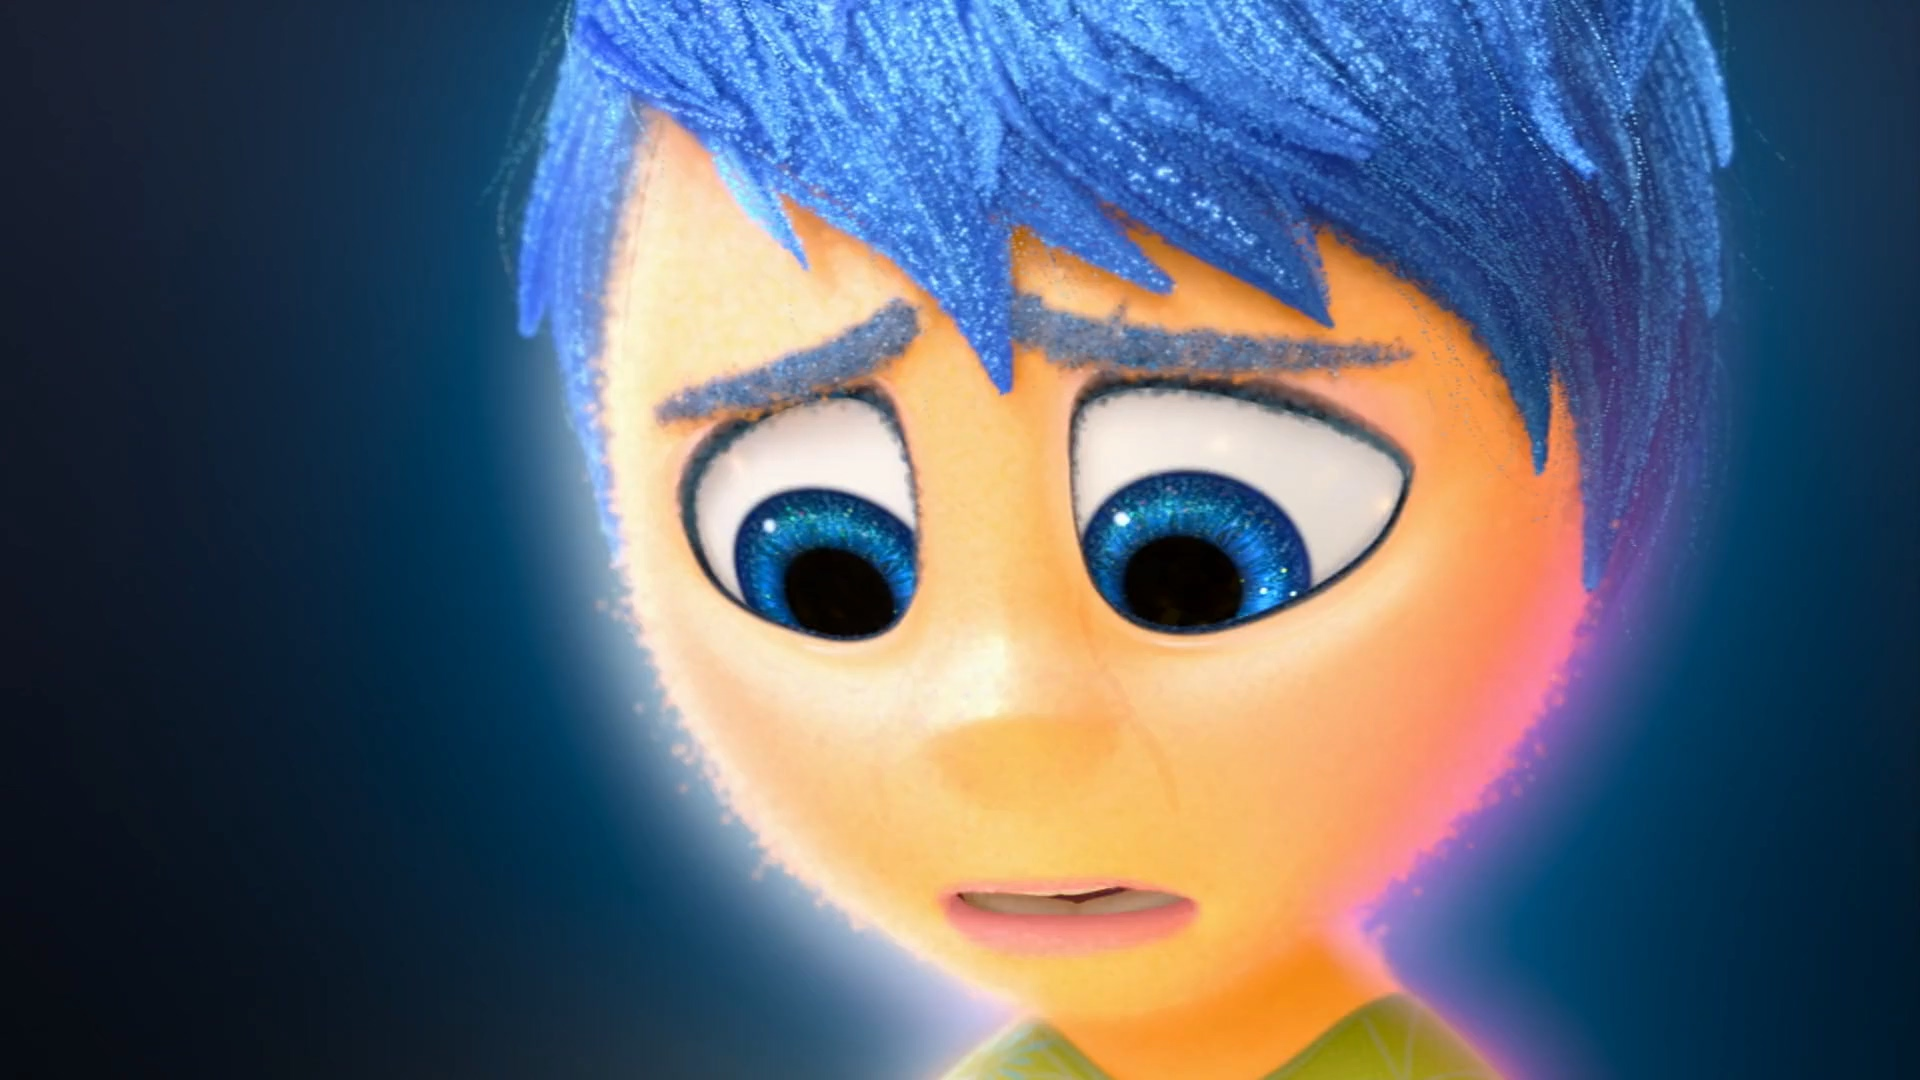 Amy Poehler in Inside Out (2015)